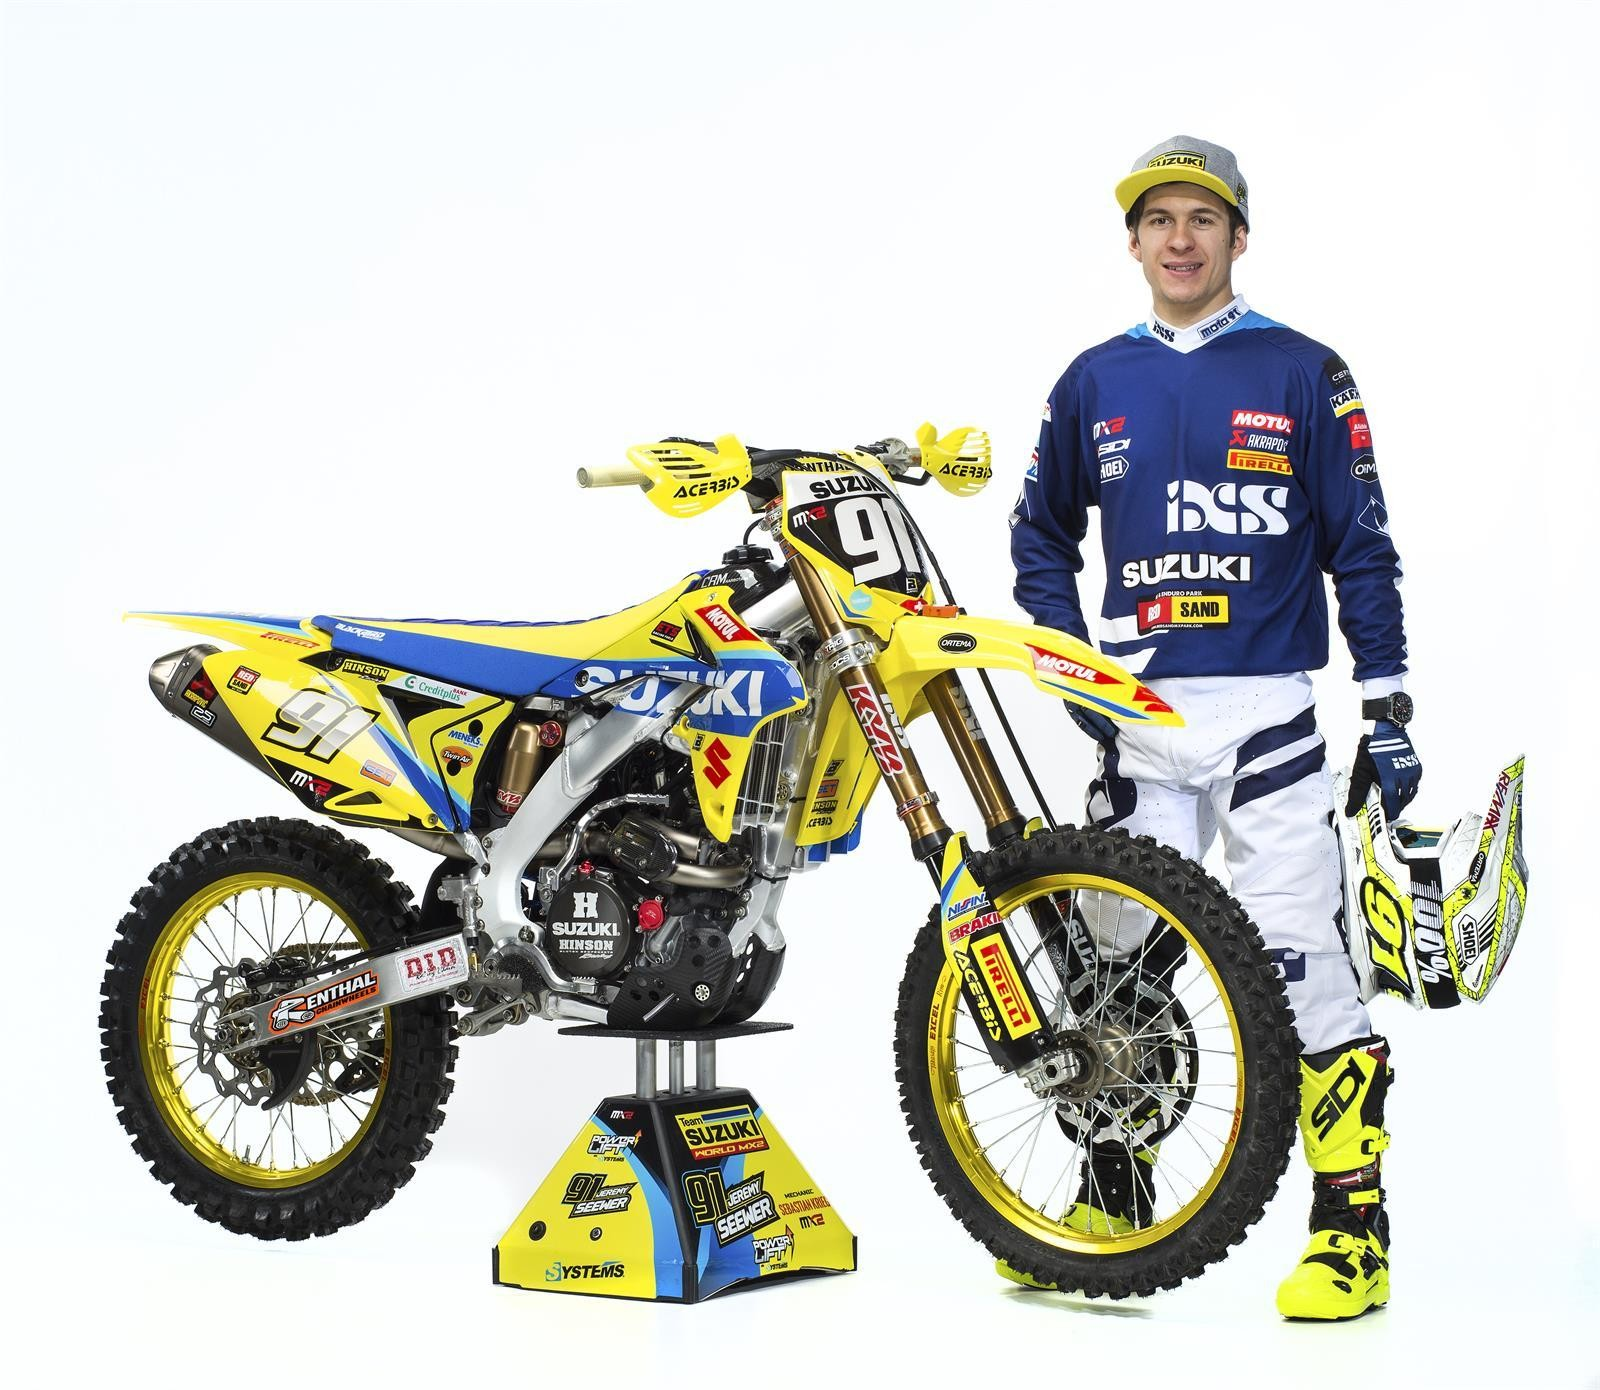 Jeremy Seewer and his 2017 Suzuki World MX2 RM-Z250 - First Look: 2017 Suzuki World MX2 Team - Motocross Pictures - Vital MX